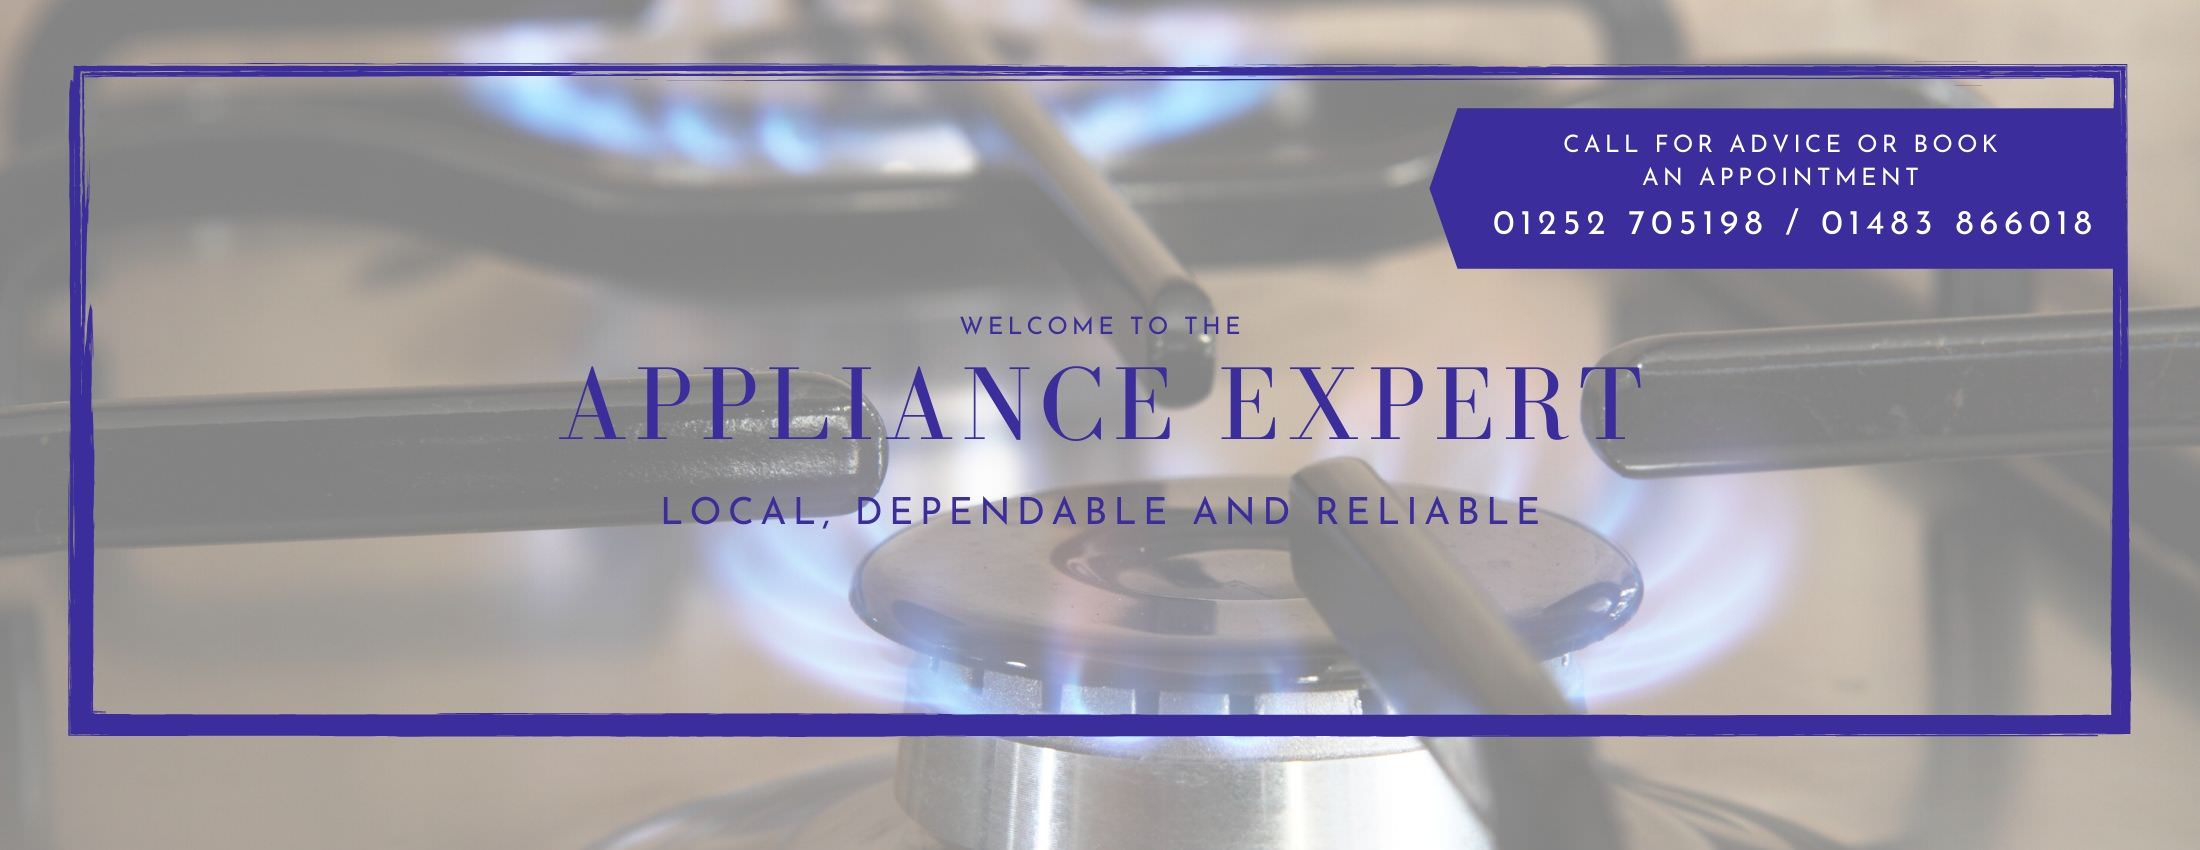 Appliance Expert Domestic Covering the surrounding areas of Godalming, Farnham, Aldershot, Guildford and Haslemere.